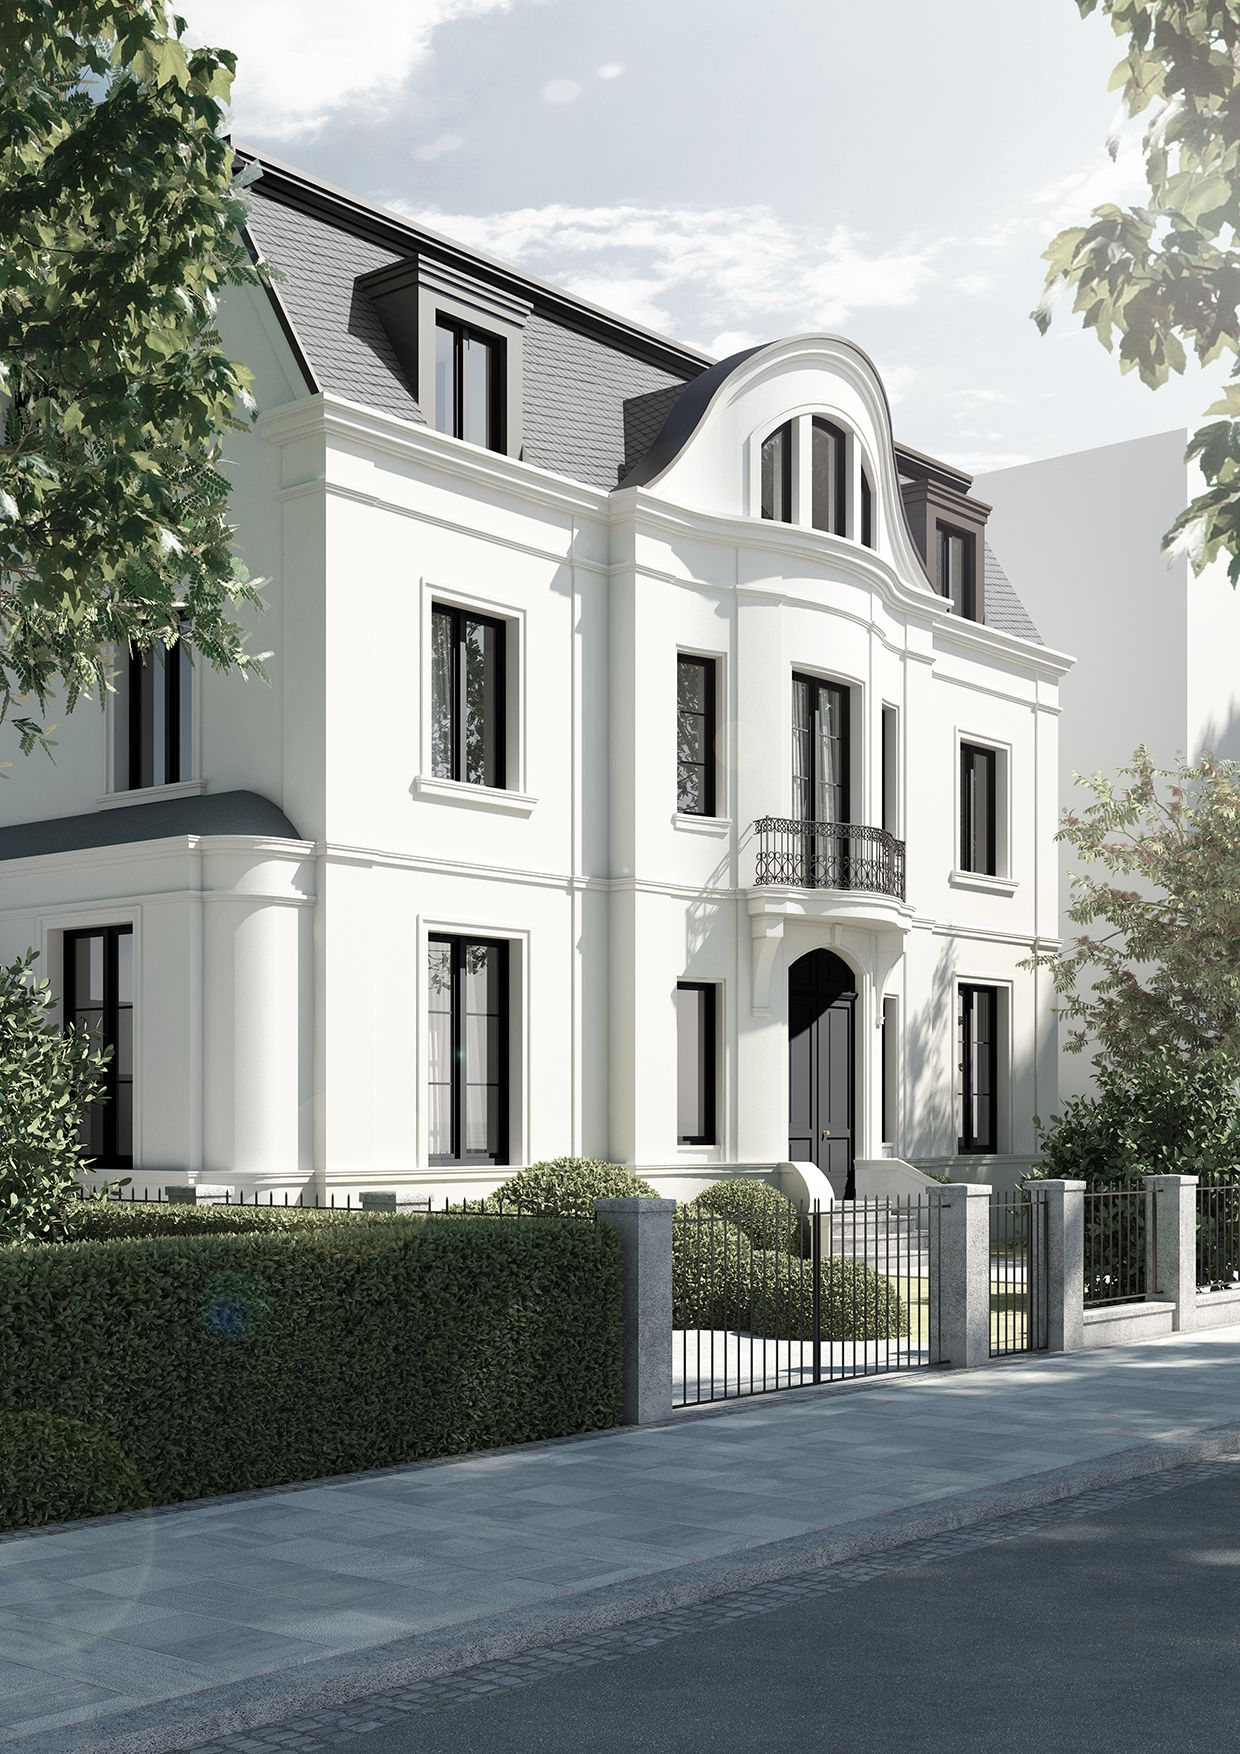 Mansard Roof Definition and Advantages - Villa, Düsseldorf ...